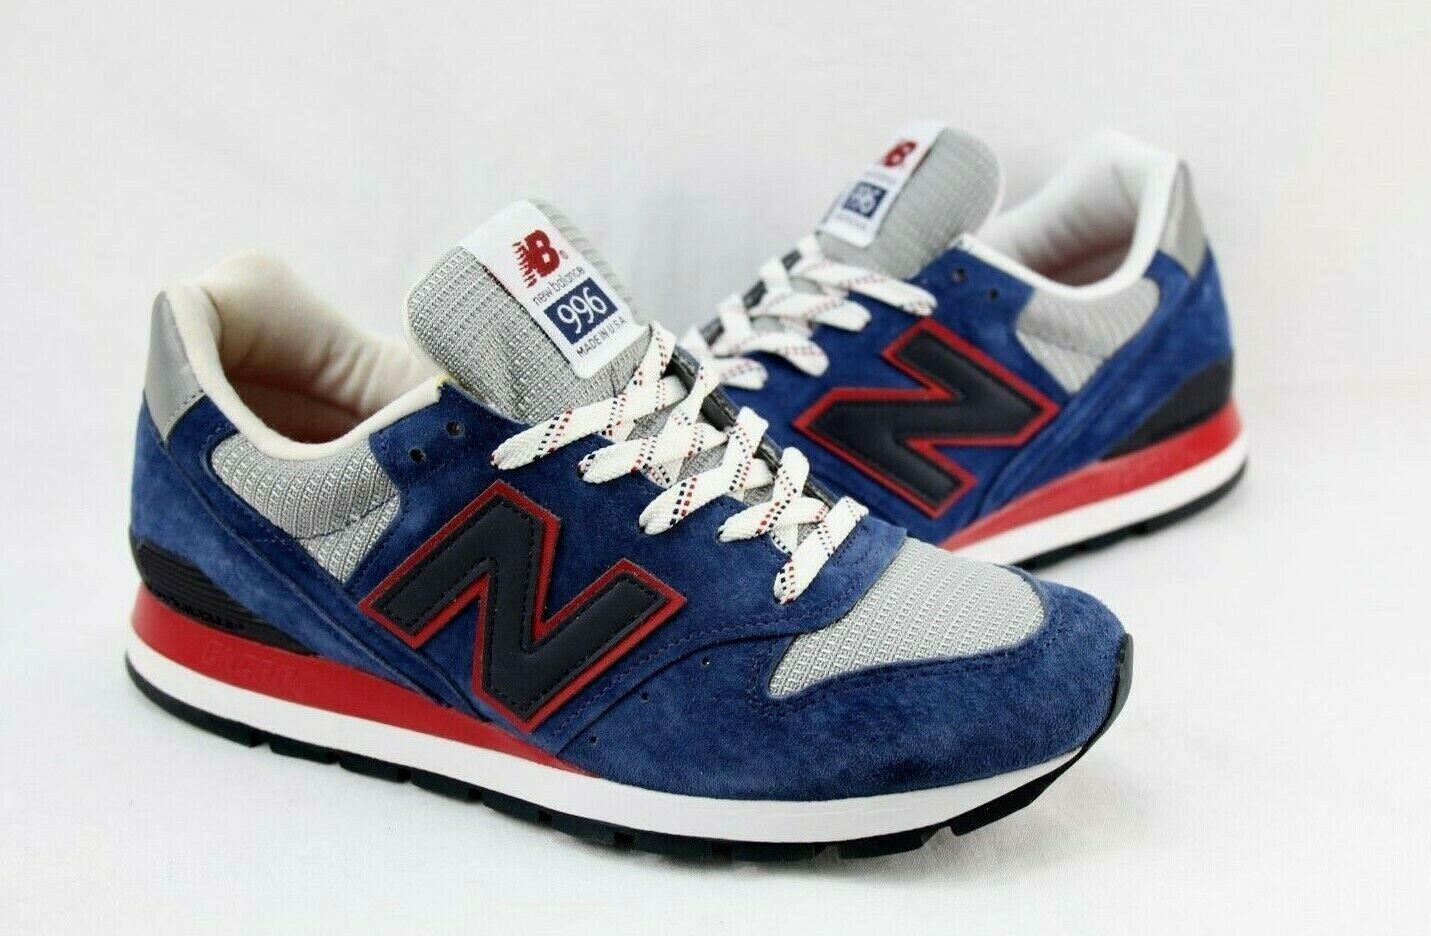 4ac9a564d785d7 New Balance Men s Fashion Sneakers Casual Athletic M996CMB Sizes 10.5 7  nxryue3174-Athletic Shoes - sandals.ewdayplumbing.com